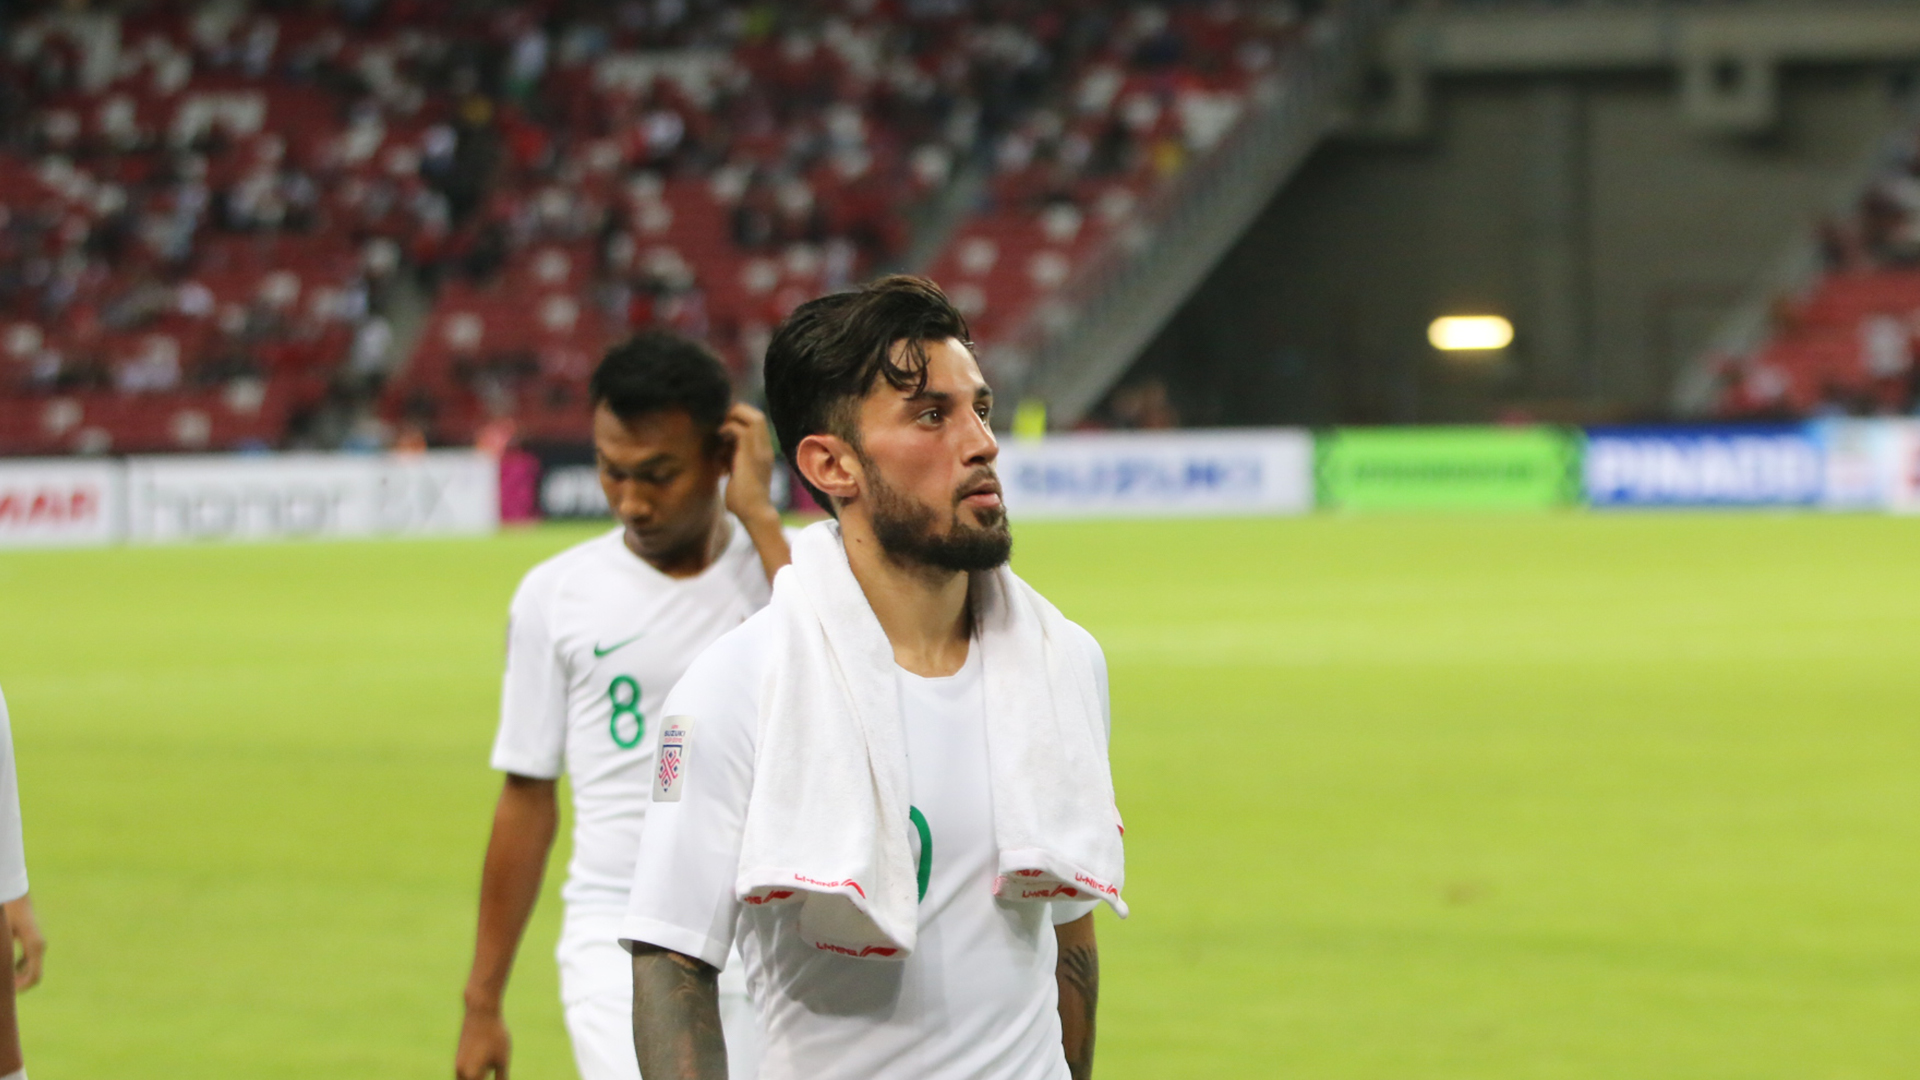 Stefano Lilipaly - Timnas Indonesia